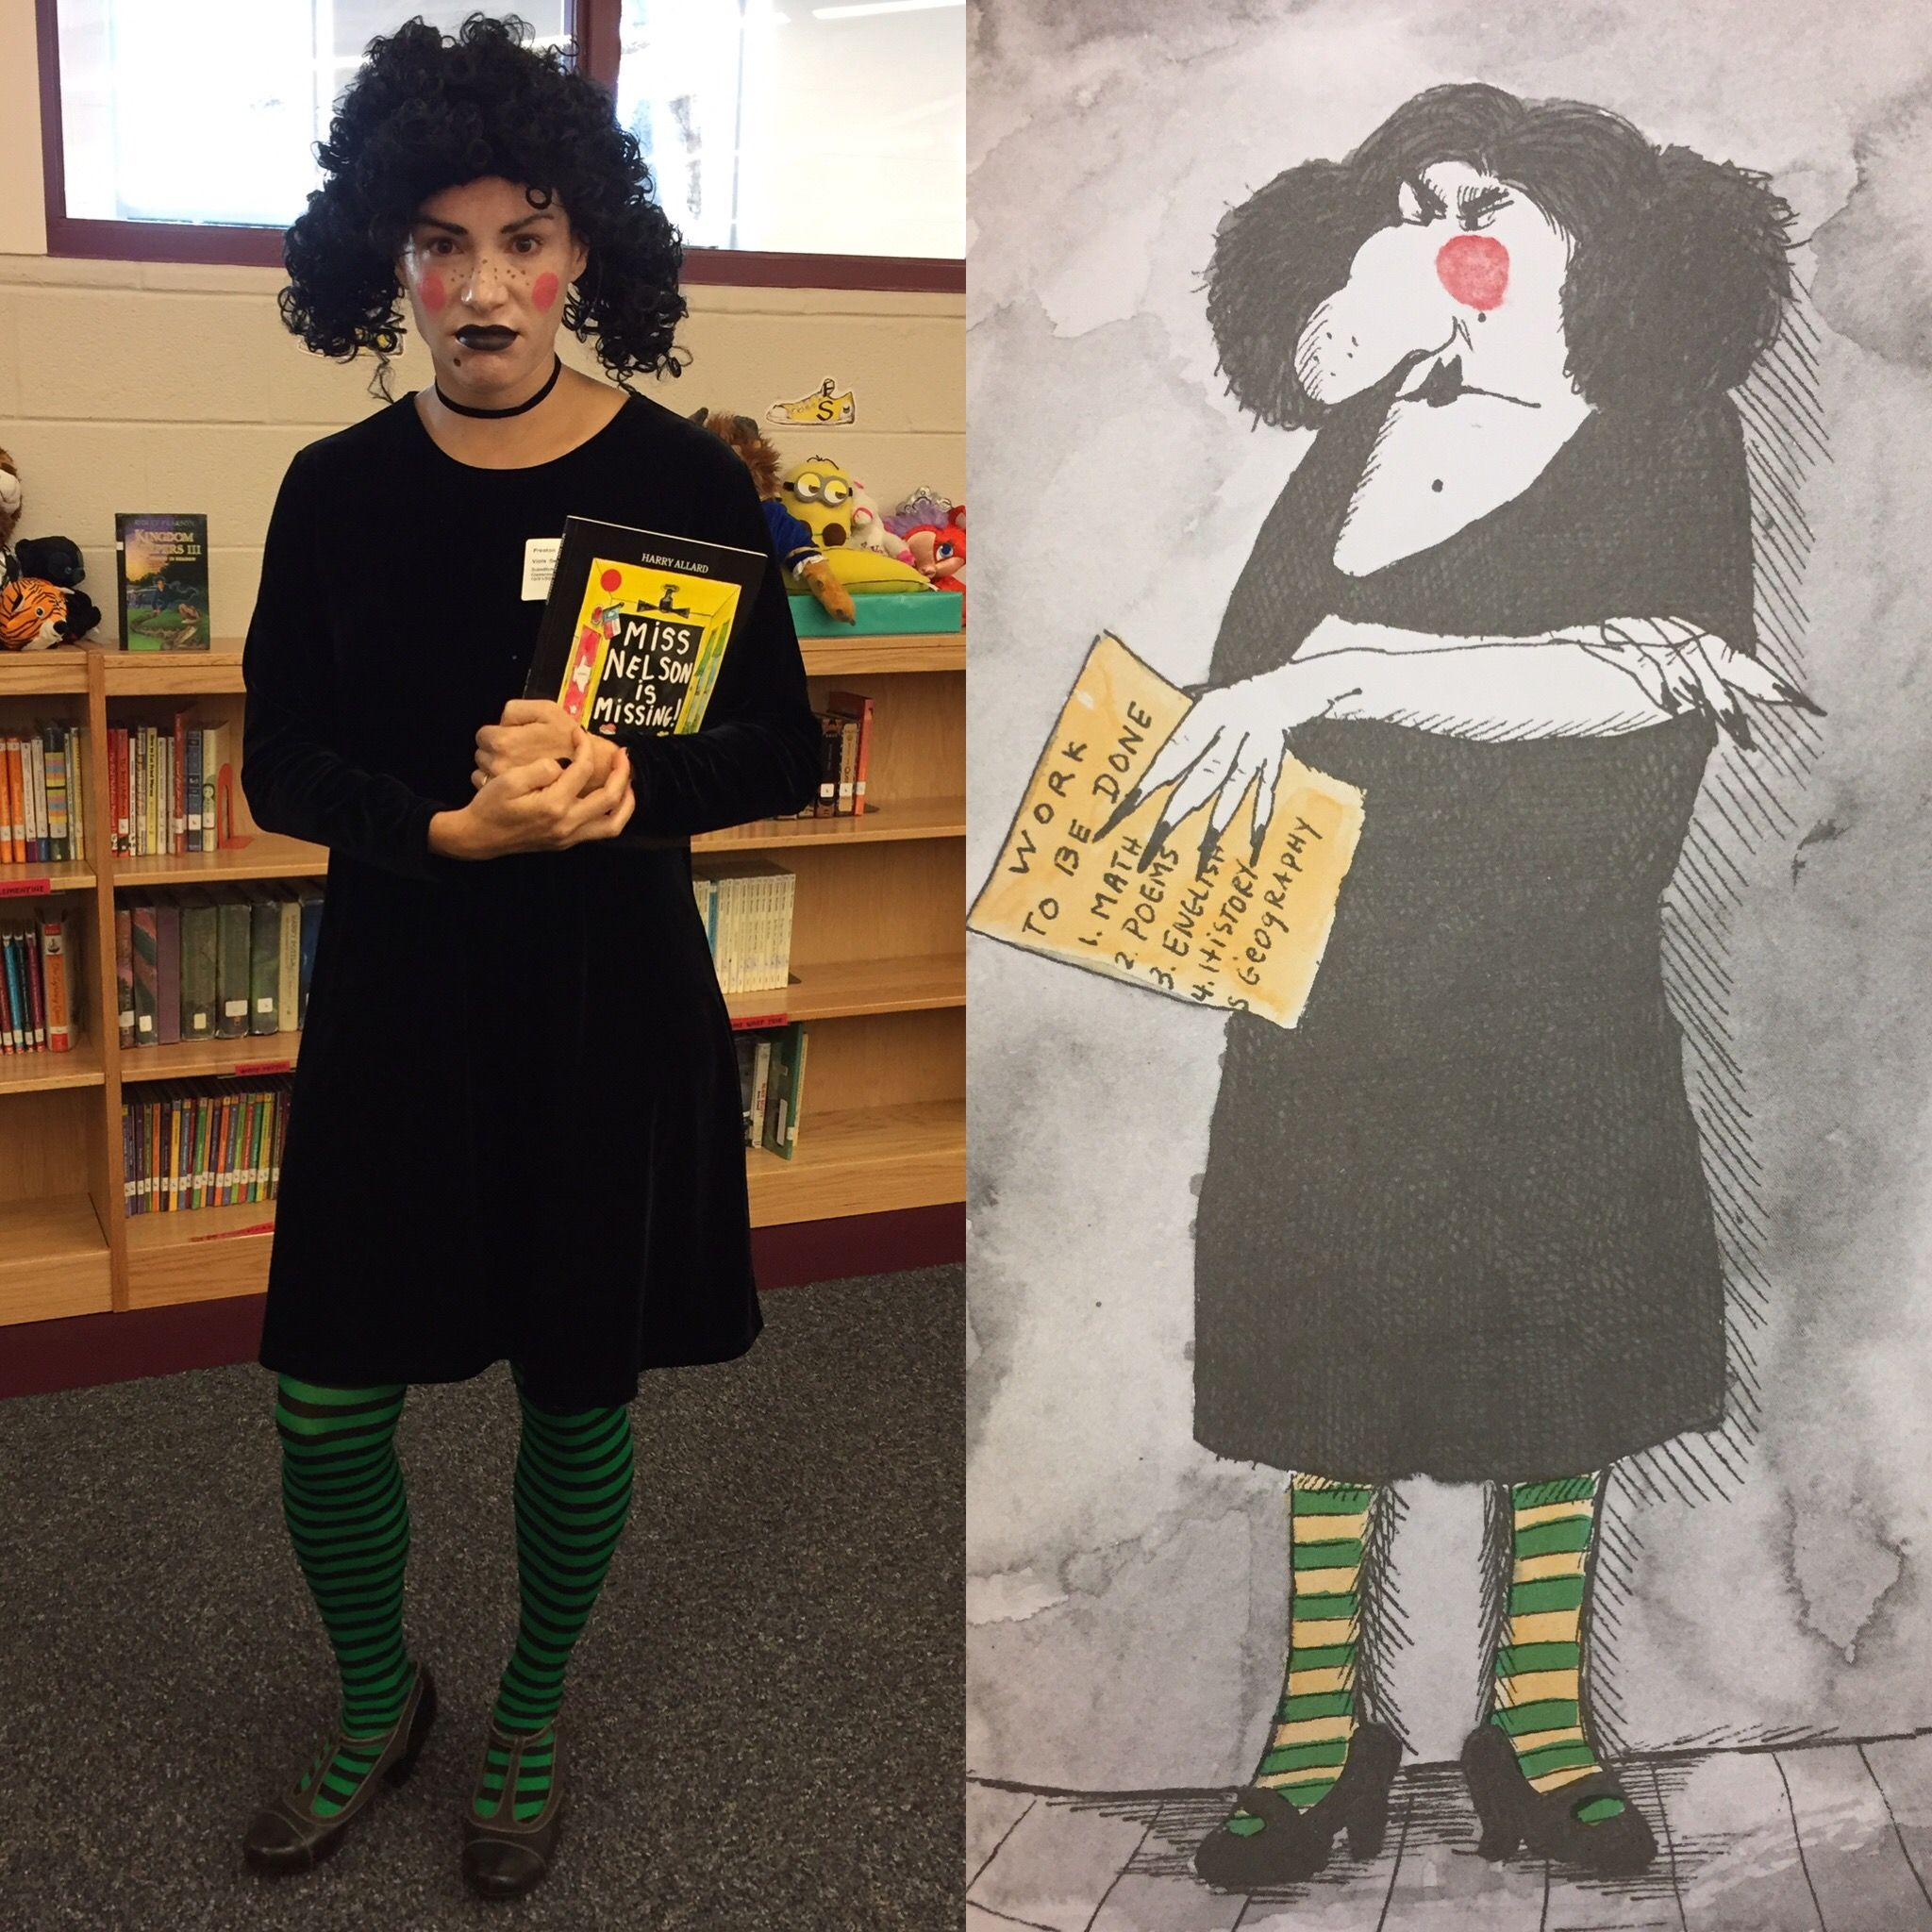 Miss Nelson Is Missing Viola Swamp Costume Viola Swamp Costume Halloween Outfits Teacher Costumes Miss viola swamp coloring page from miss viola swamp category. miss nelson is missing viola swamp